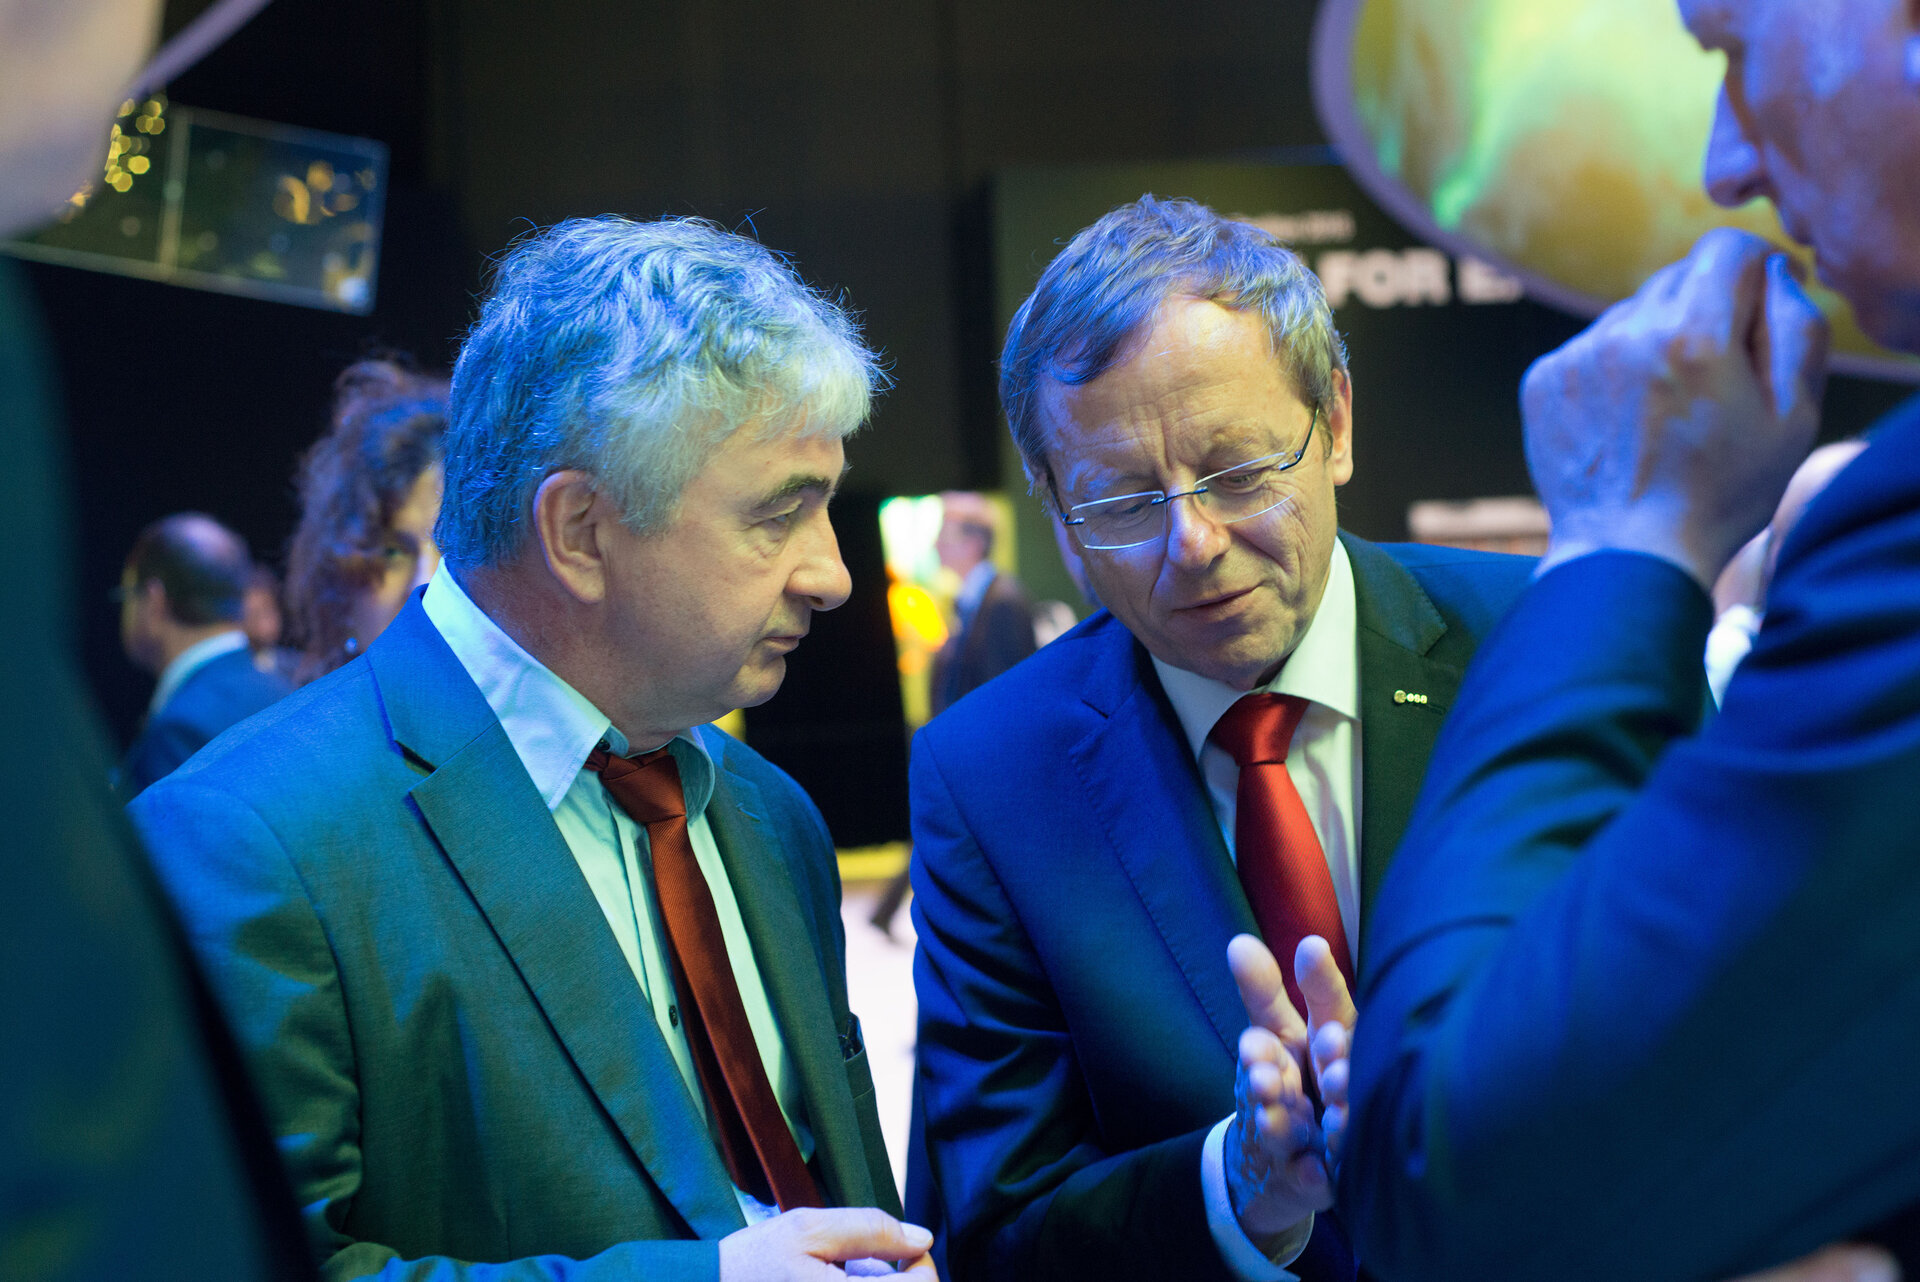 Wolfgang Scheremet visits with Jan Wörner the 'Space for Earth' pavilion